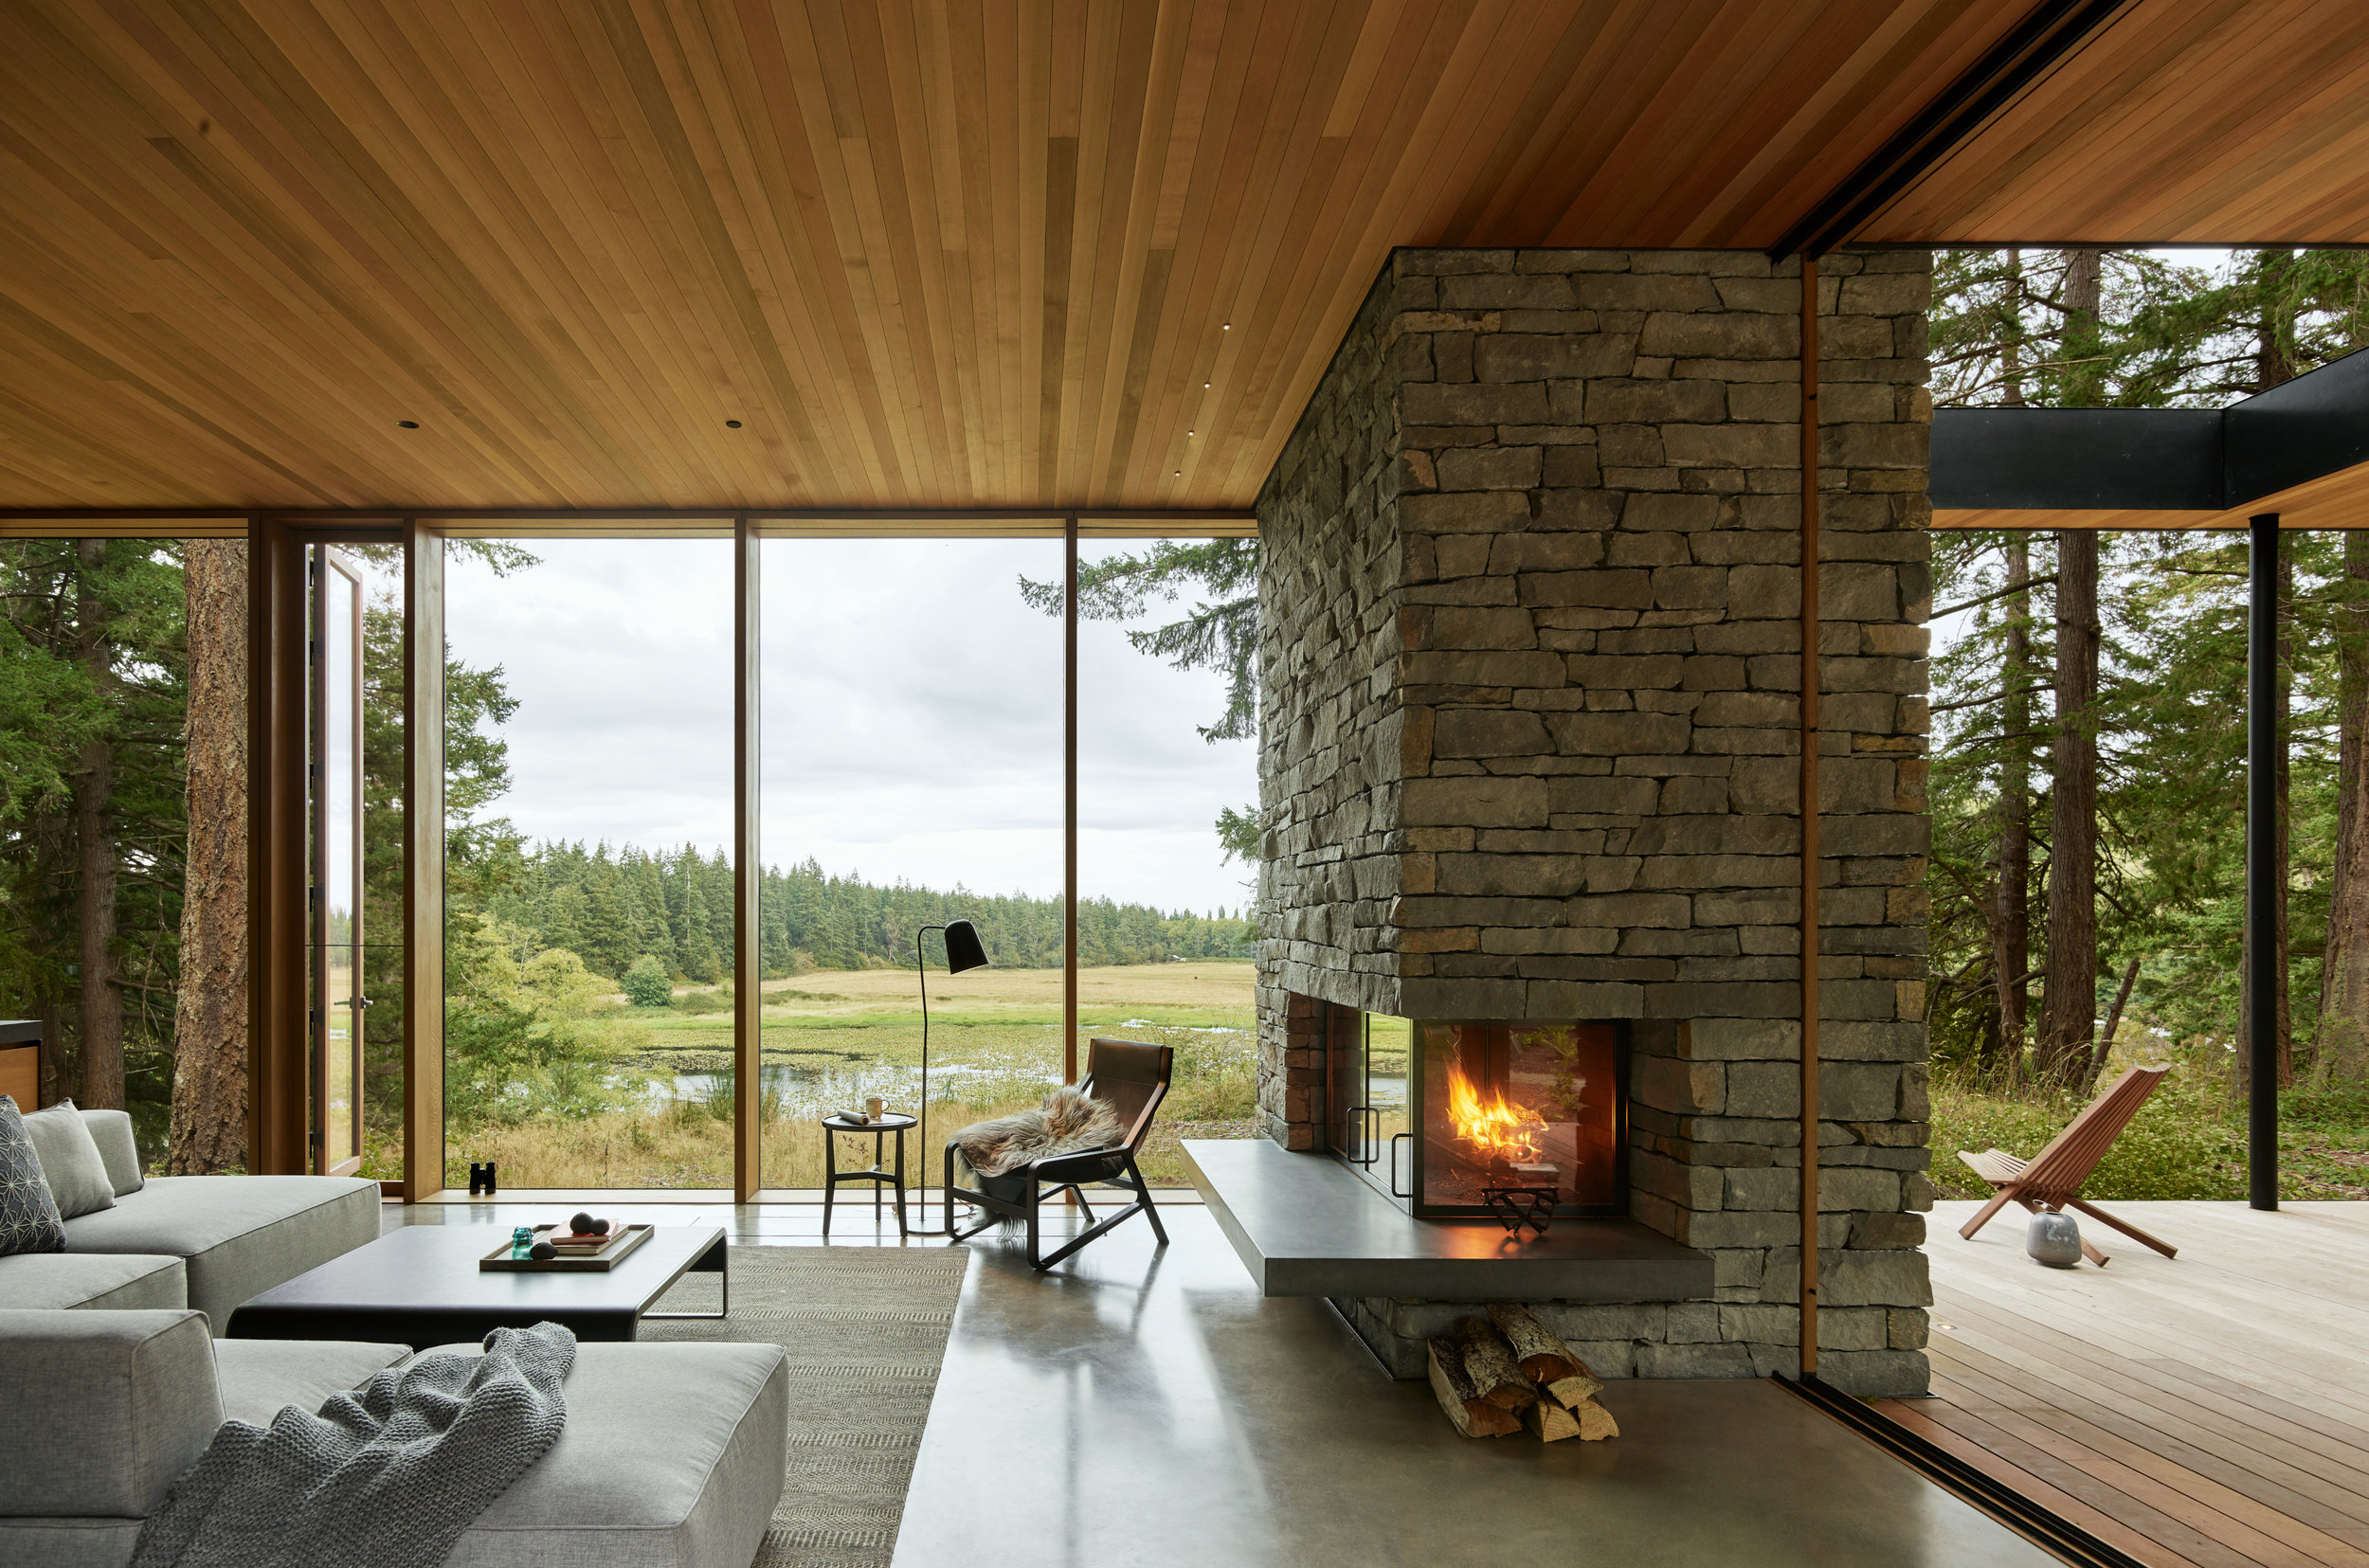 Whidbey Farmhouse // Architecture:  MW Works   New residential construction consisting of several structures, located on Whidbey Island. (photo: Kevin Scott)